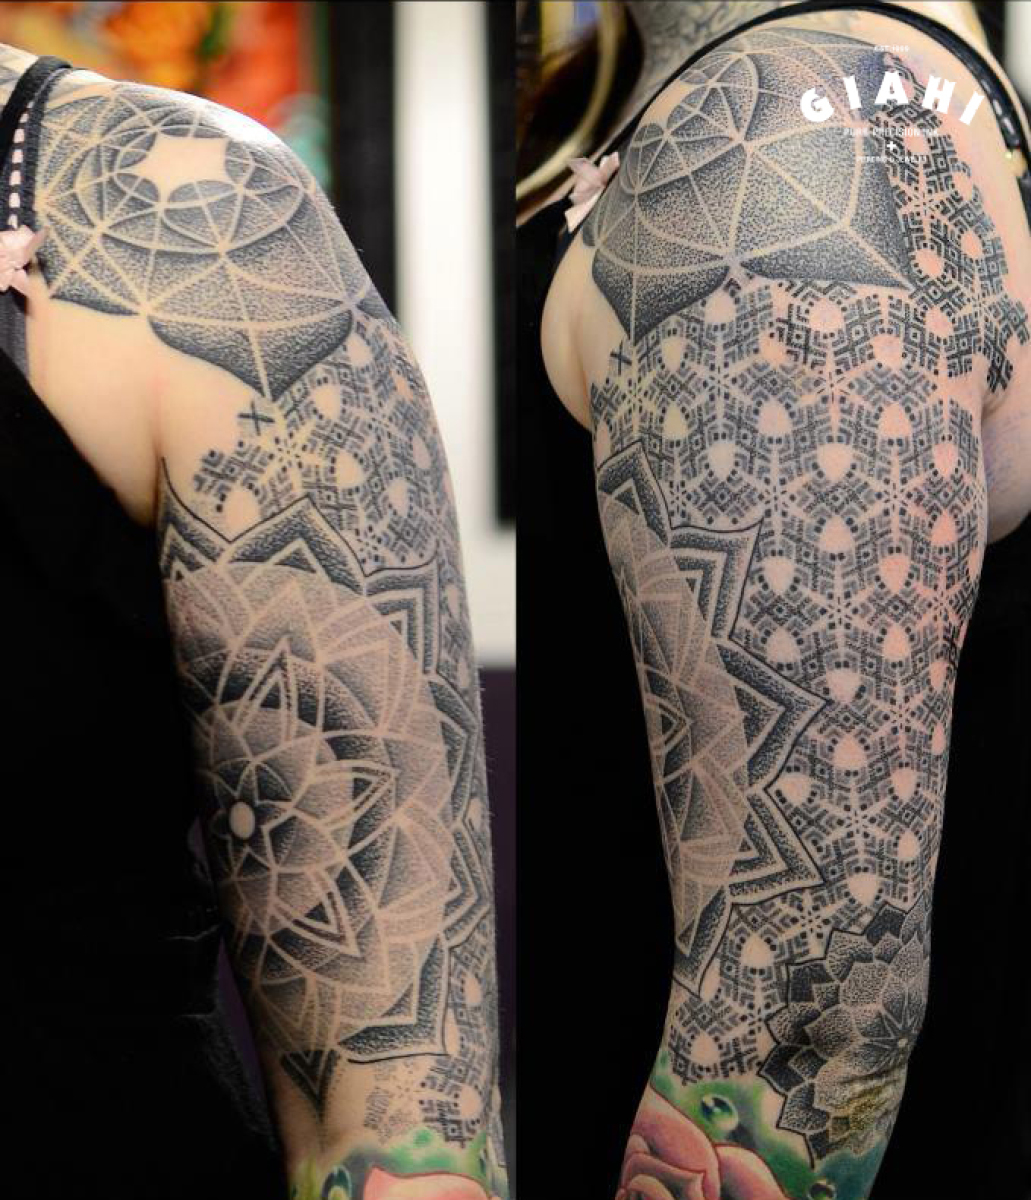 Flowers Dotwork tattoo sleeve by Andy Cryztalz